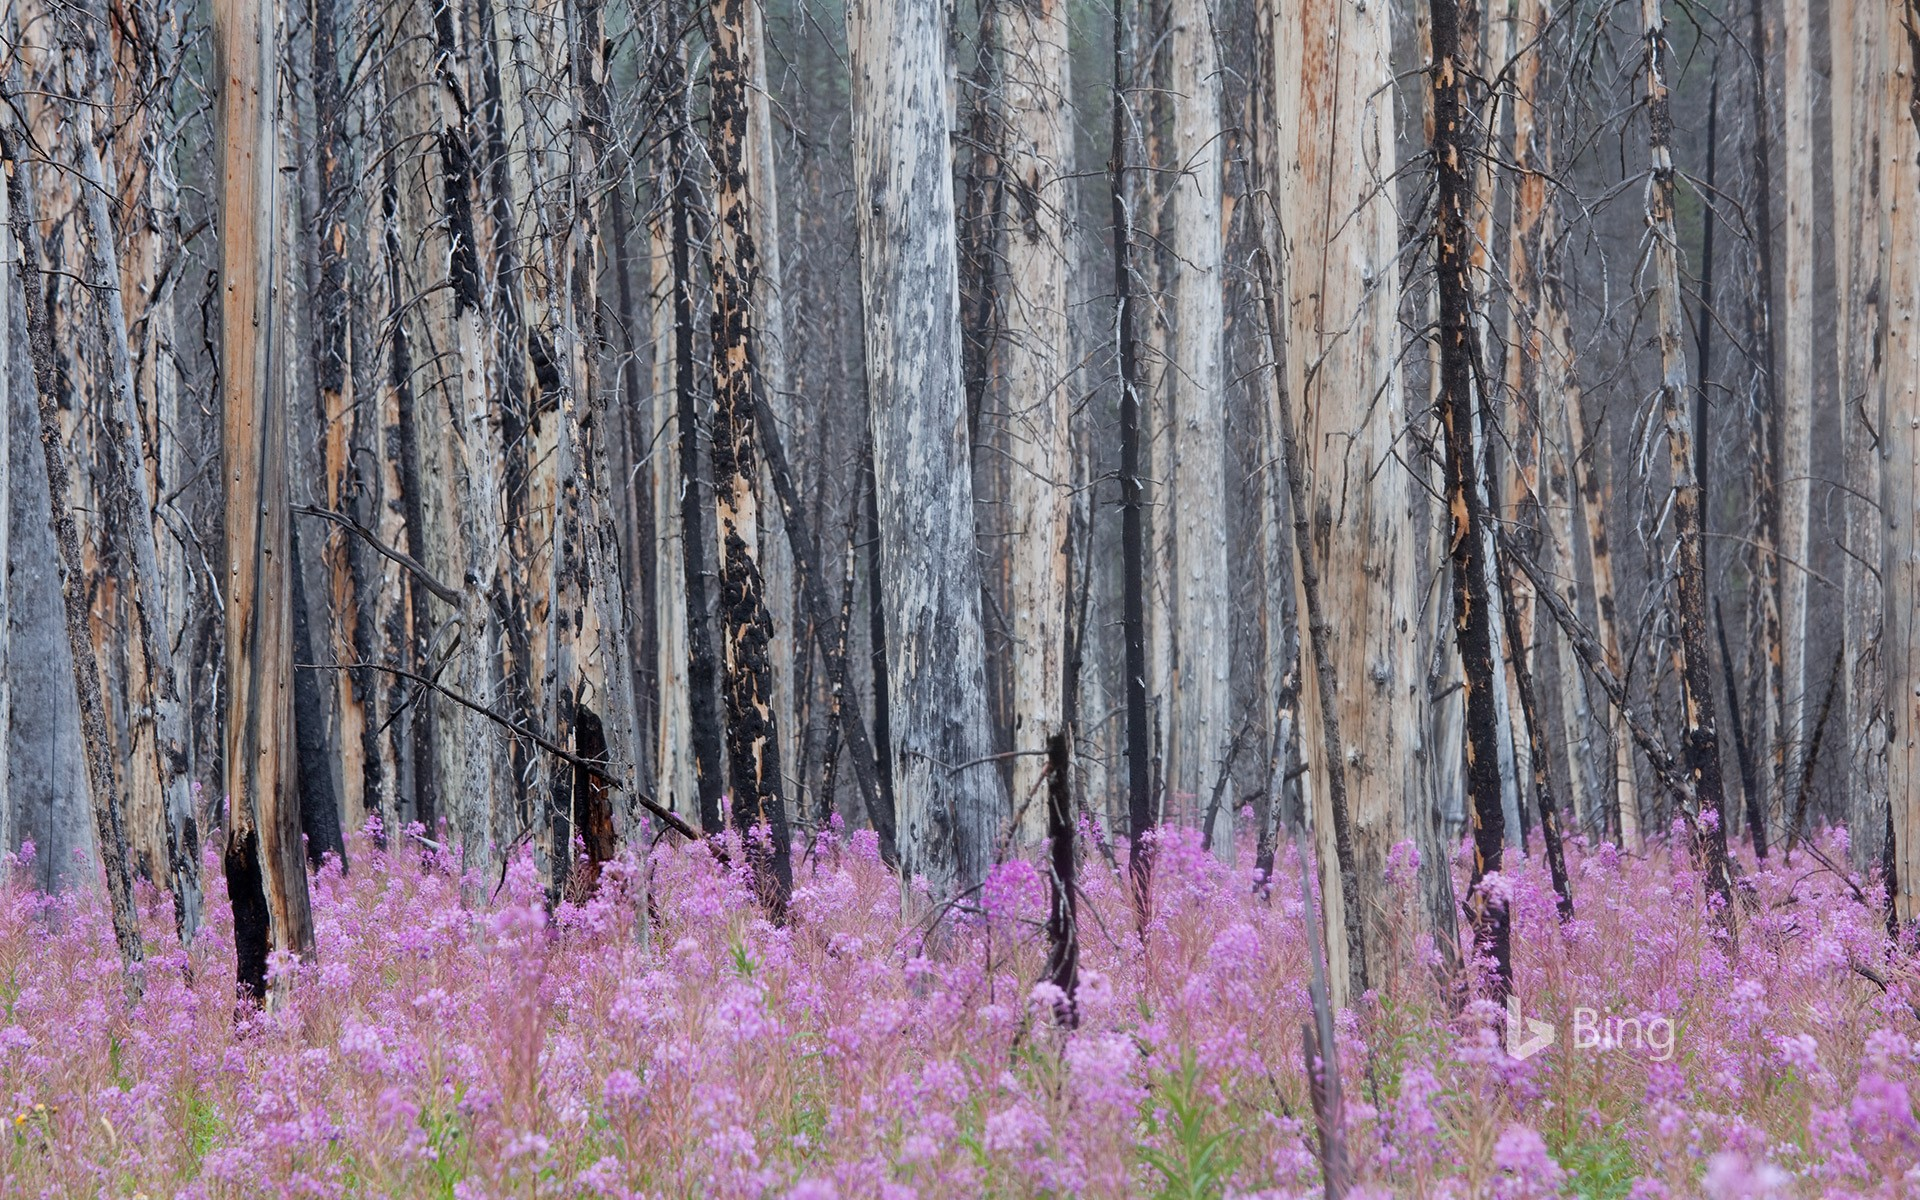 Burnt forest with fireweed in Banff National Park, Alberta, Canada